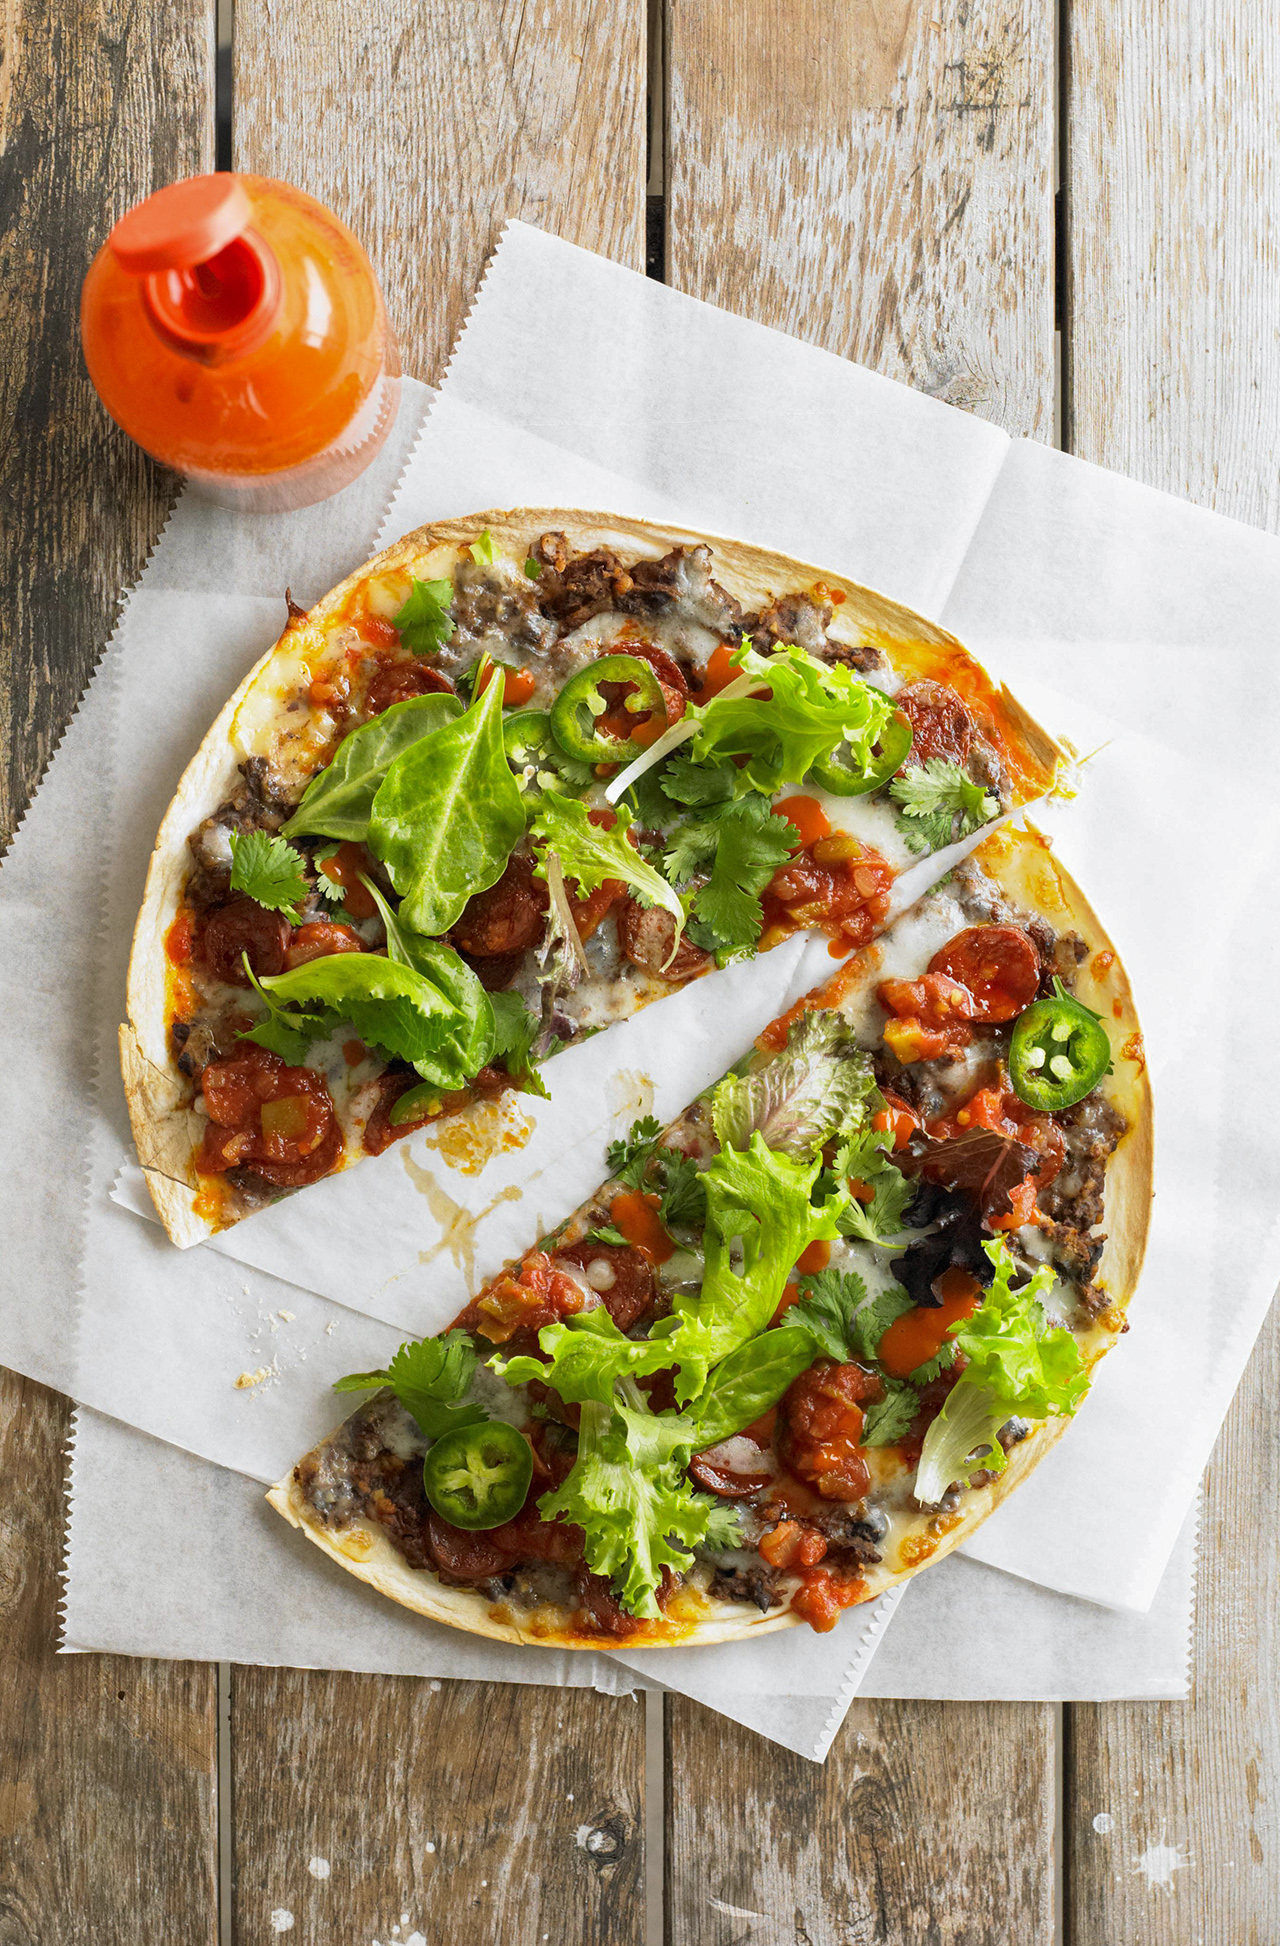 Tlayuda con Chorizo (Mexican Pizza with Chorizo)